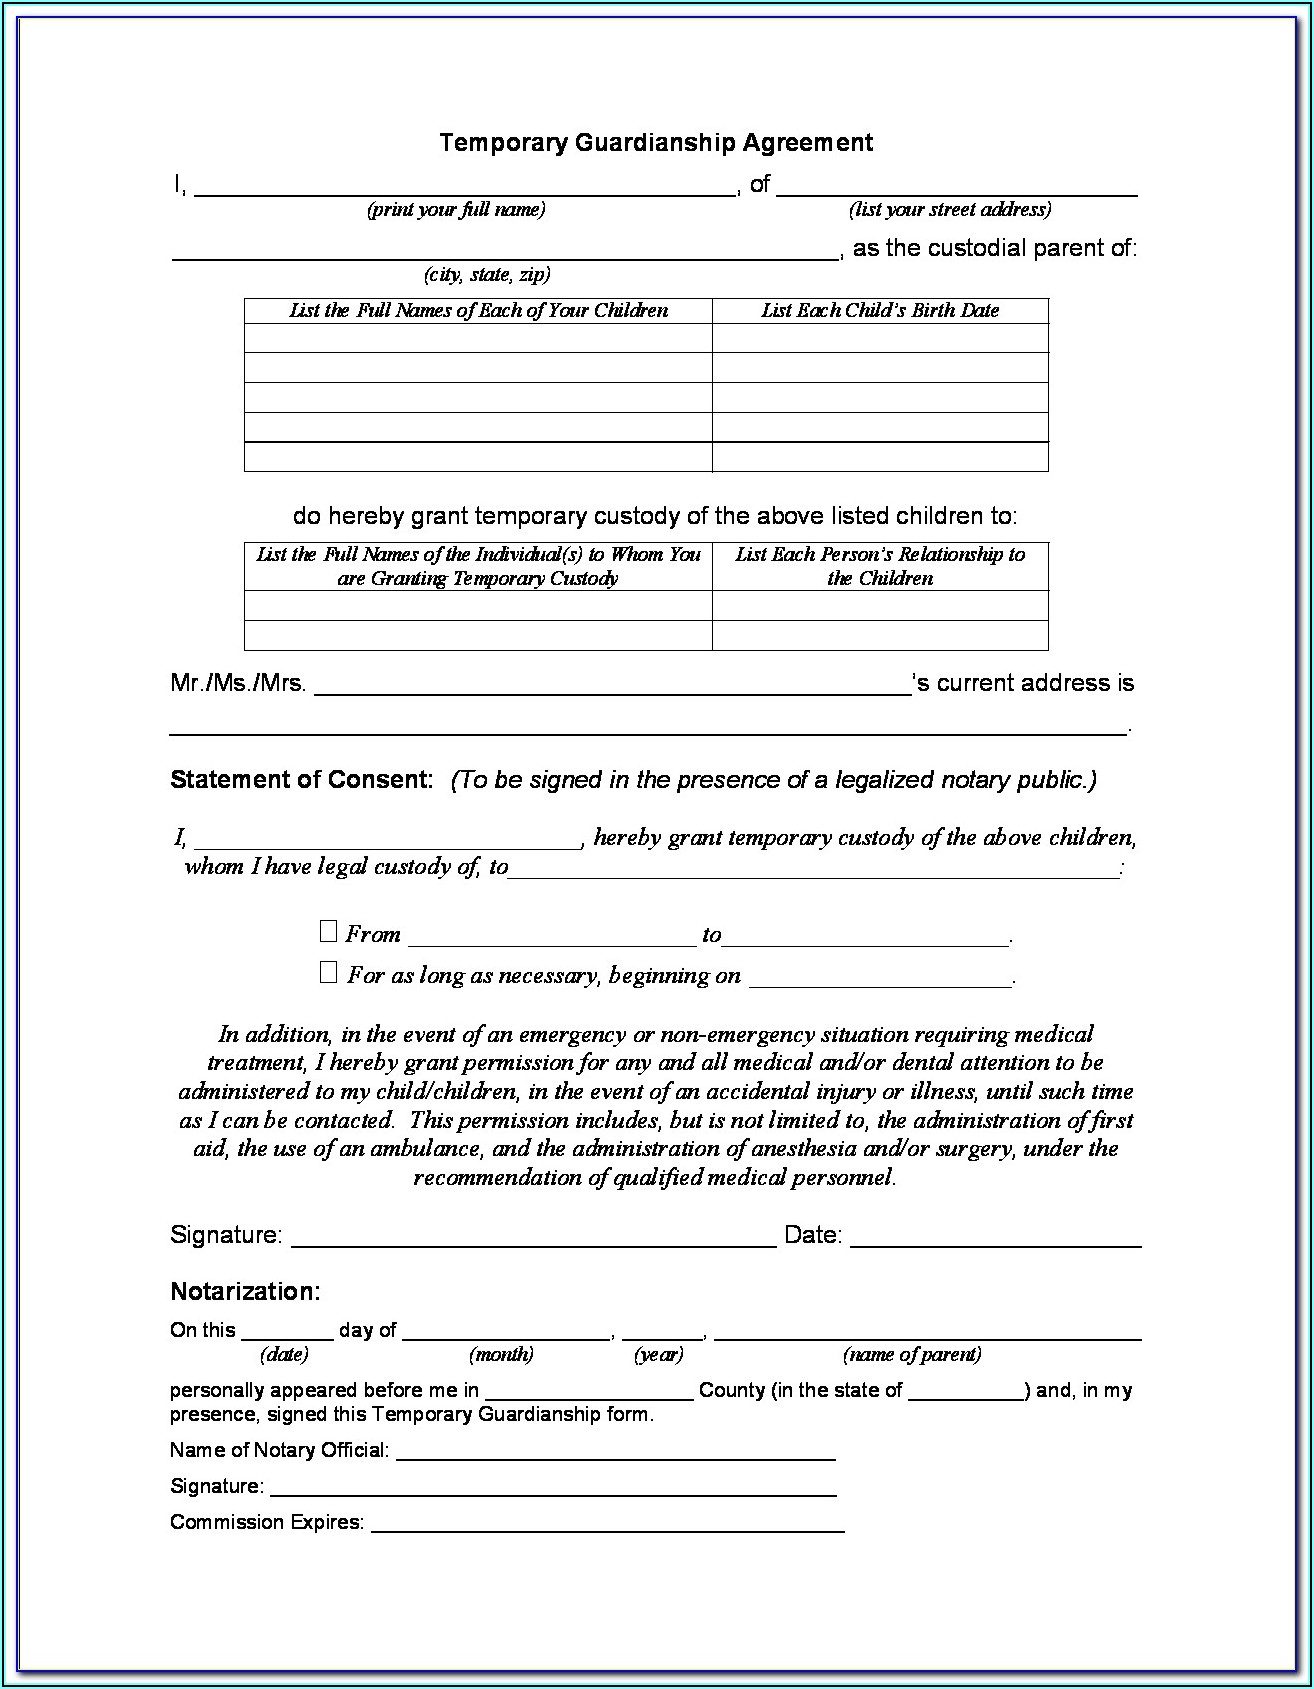 Louisiana Temporary Custody Forms